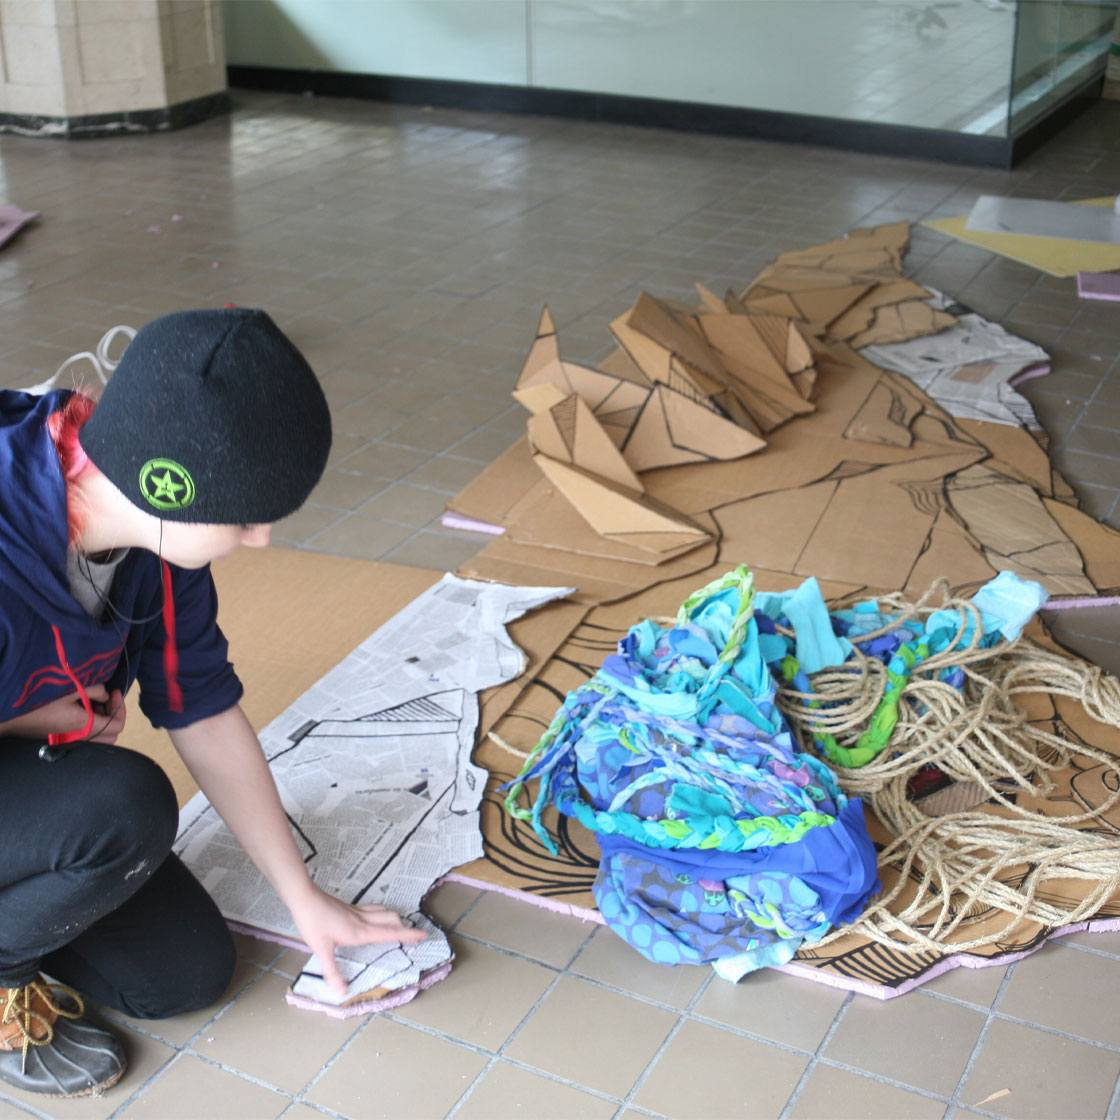 A young person working on a multimedia art project